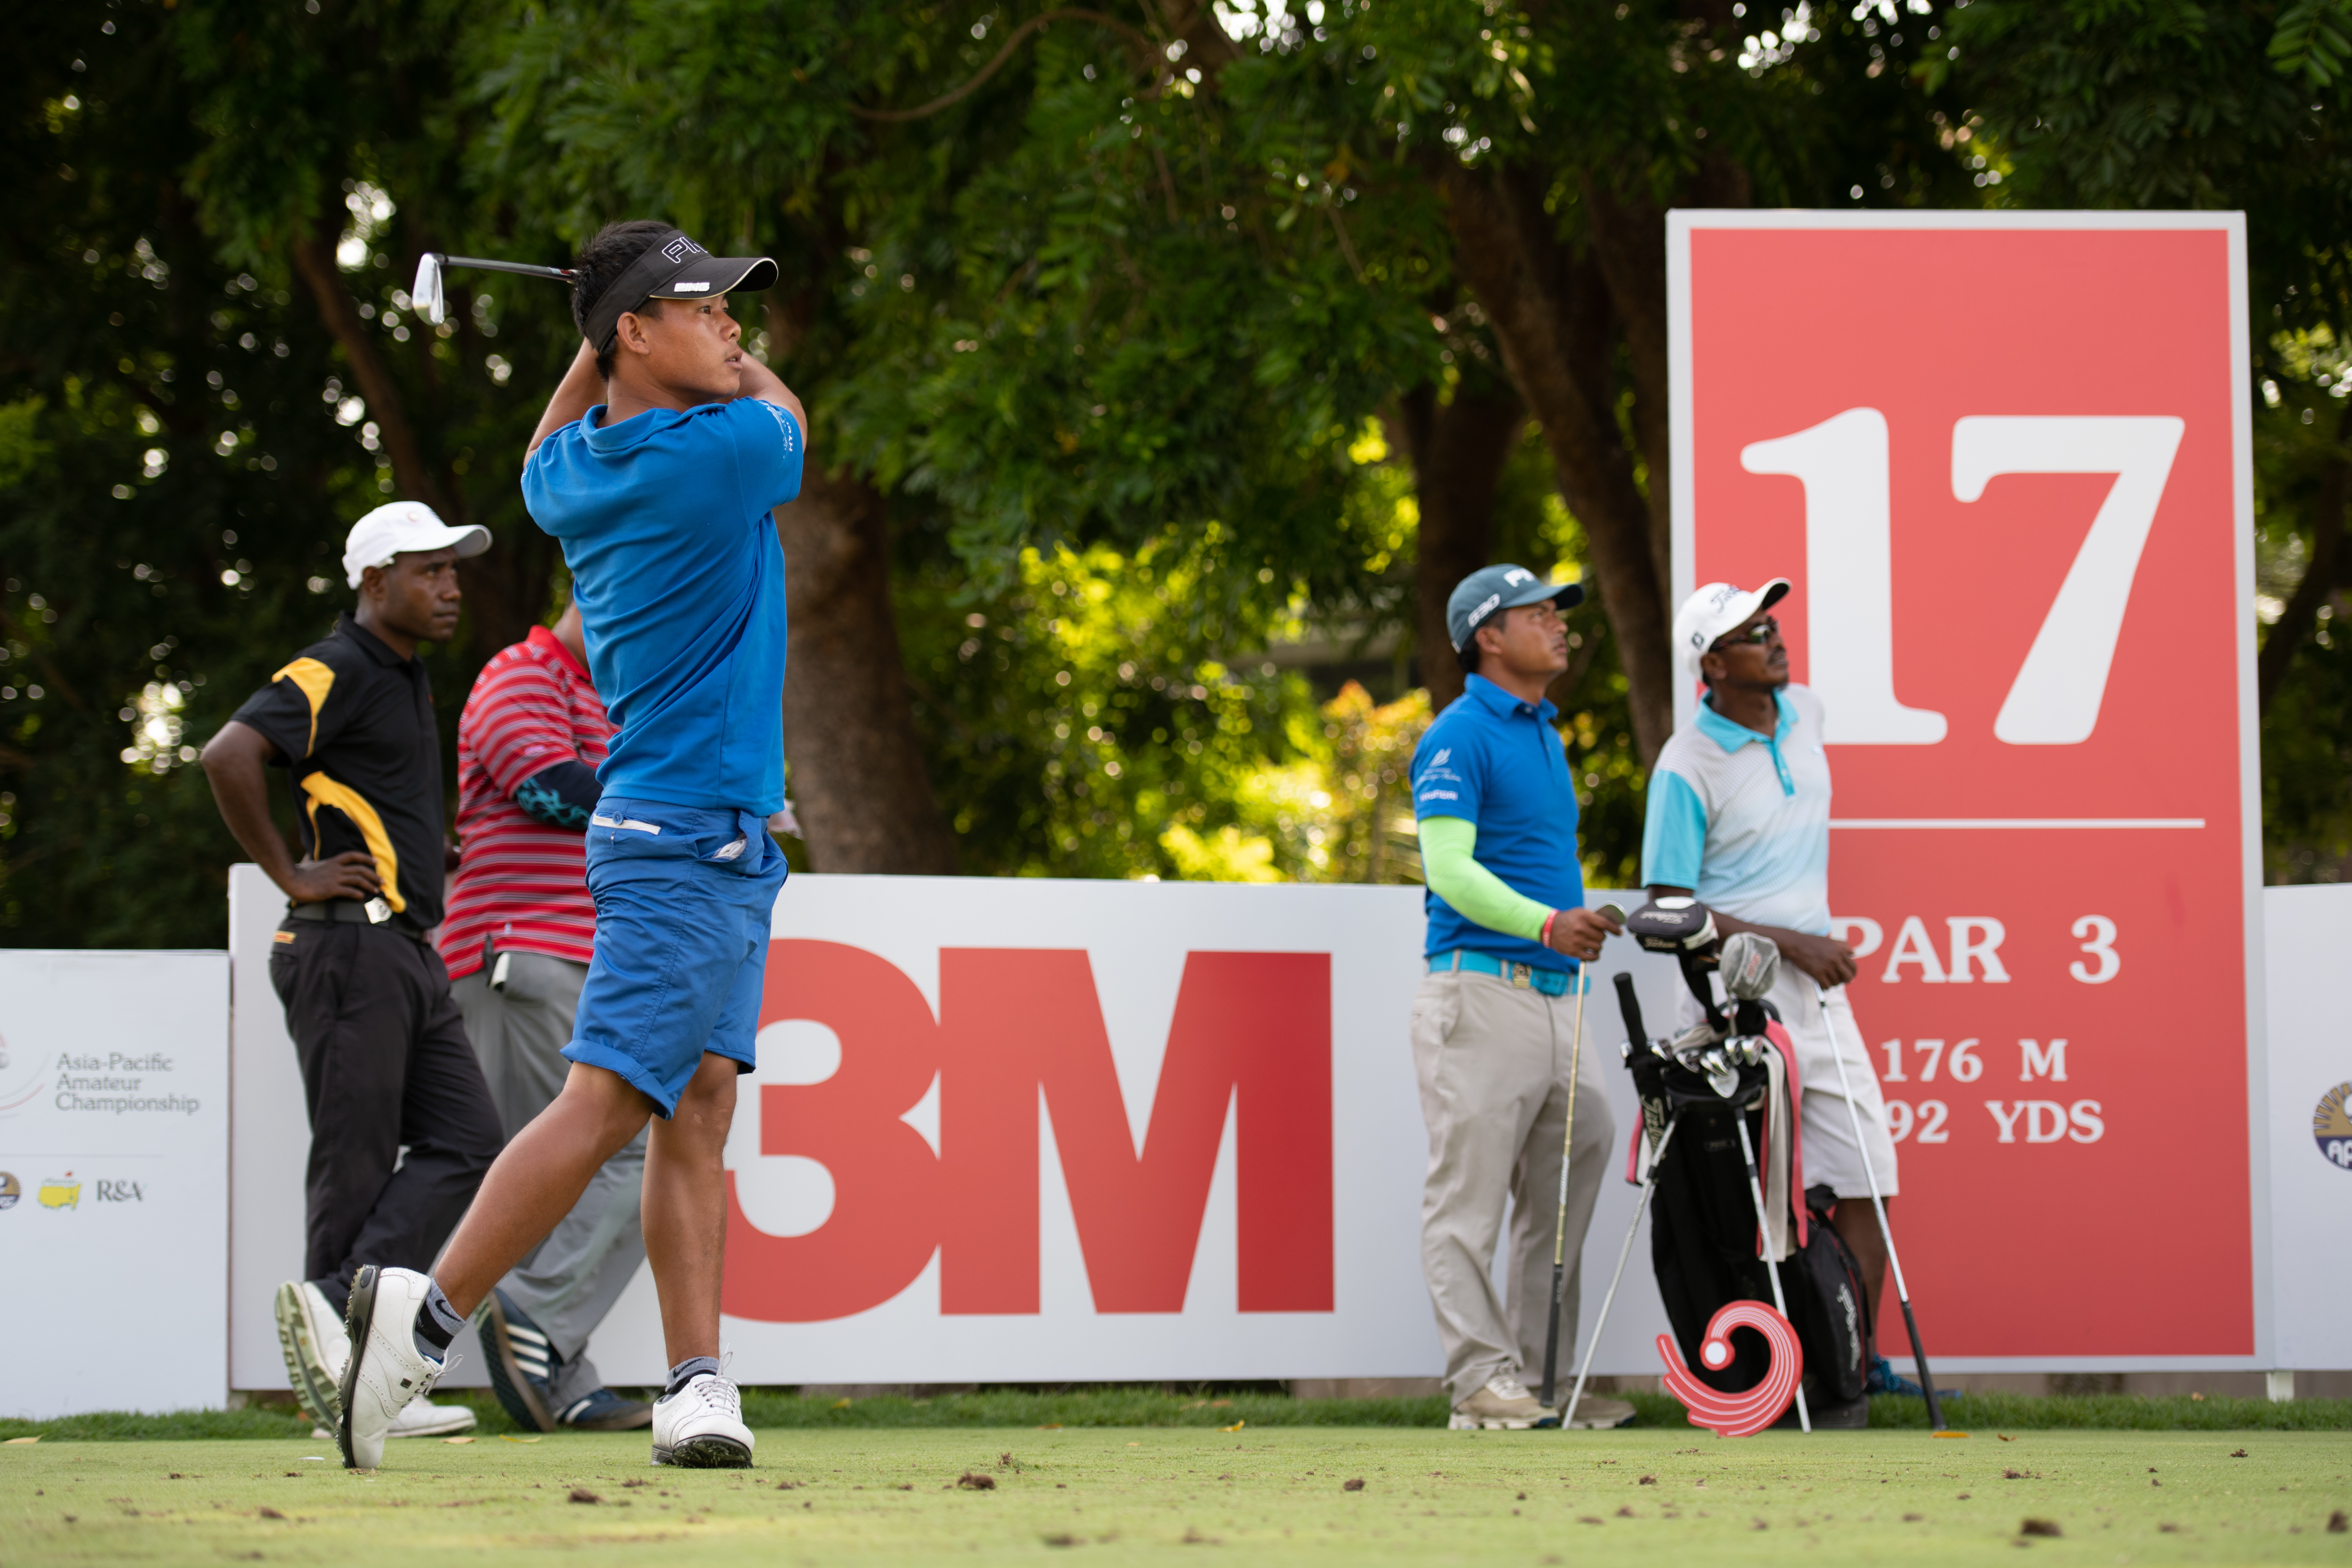 Sukra Bahadur Rai of Nepal in action during the 2018 Asia-Pacific Amateur Championship (AAC) at Sentosa Golf Club, Singapore, on Wednesday, October, 3, 2018. Photographer: Graham Uden/AAC